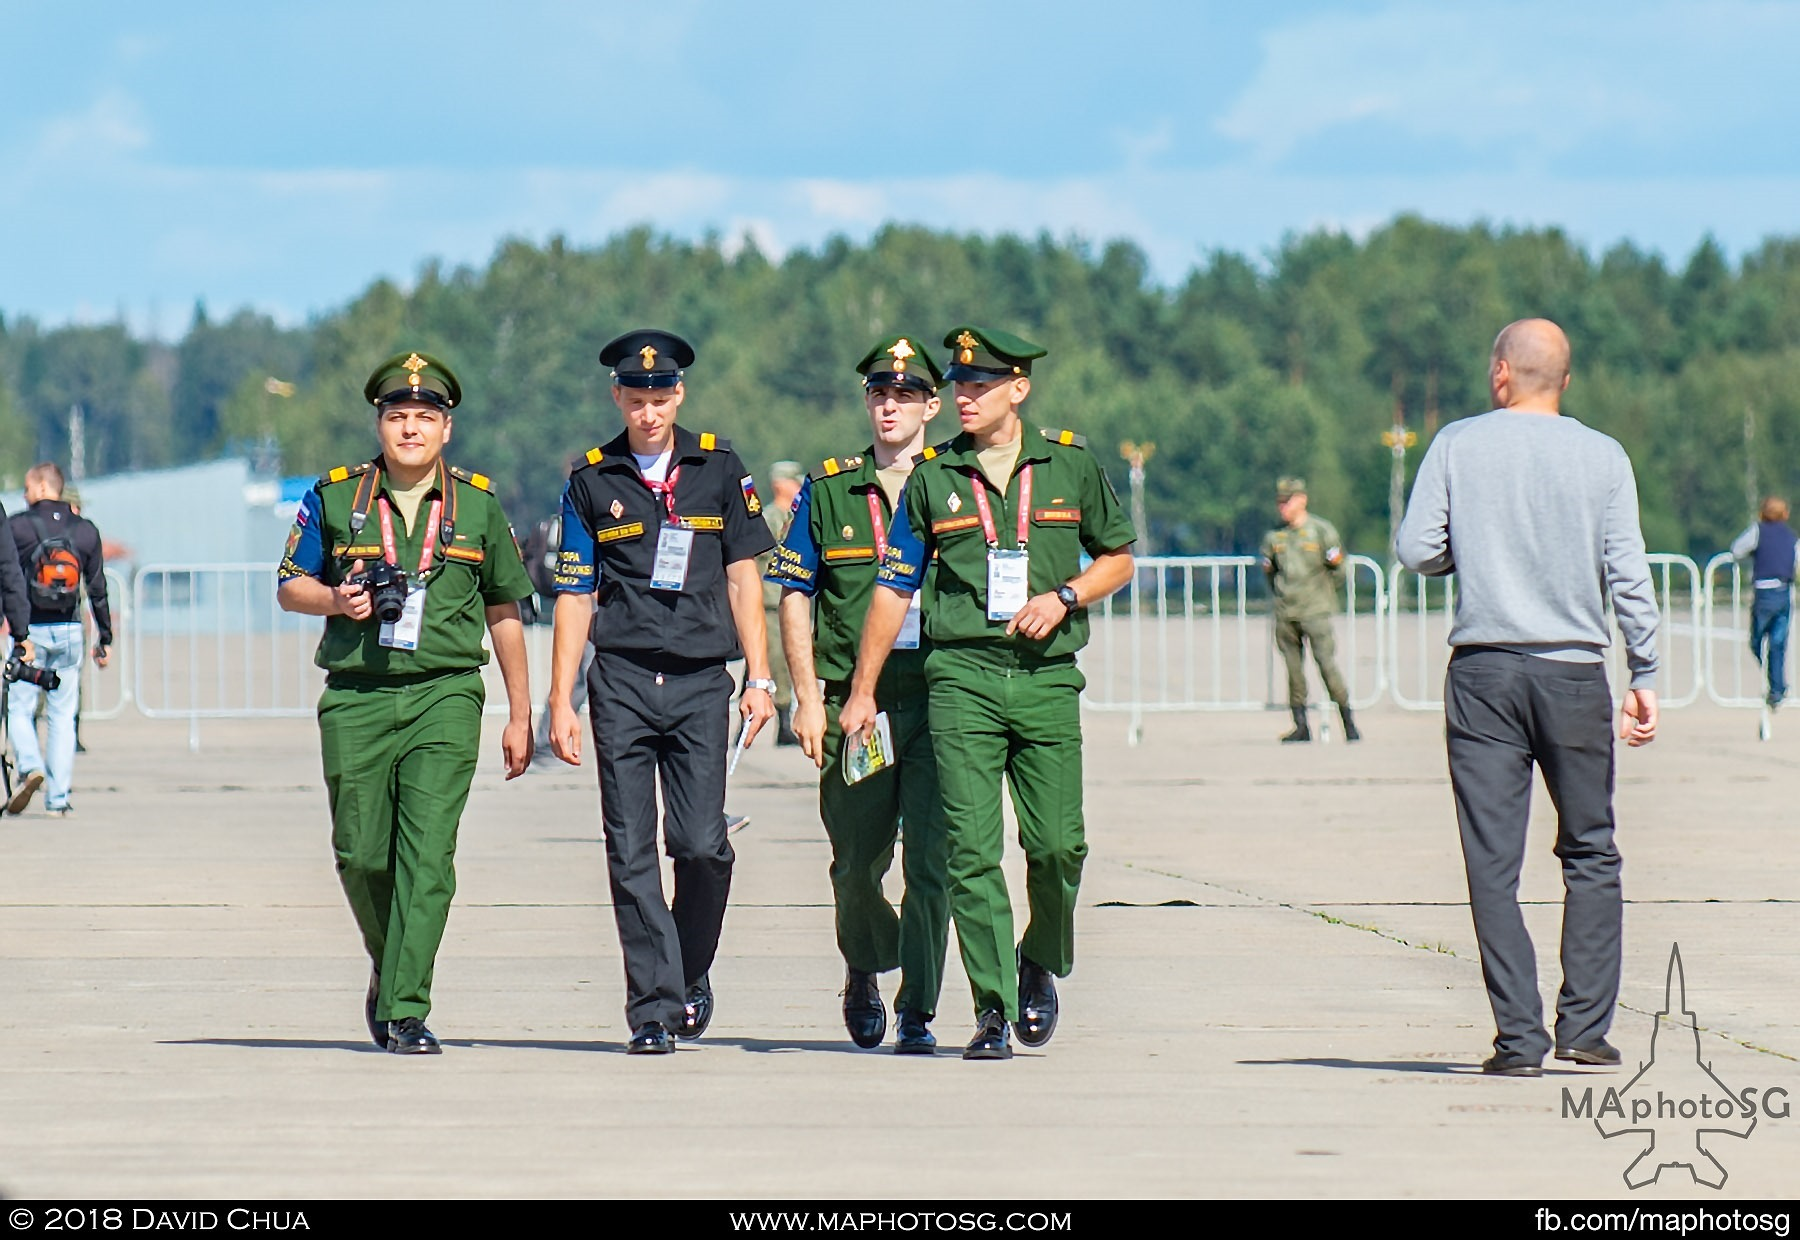 30. Base personnel in Kubinka Airfield going around taking pictures of the event